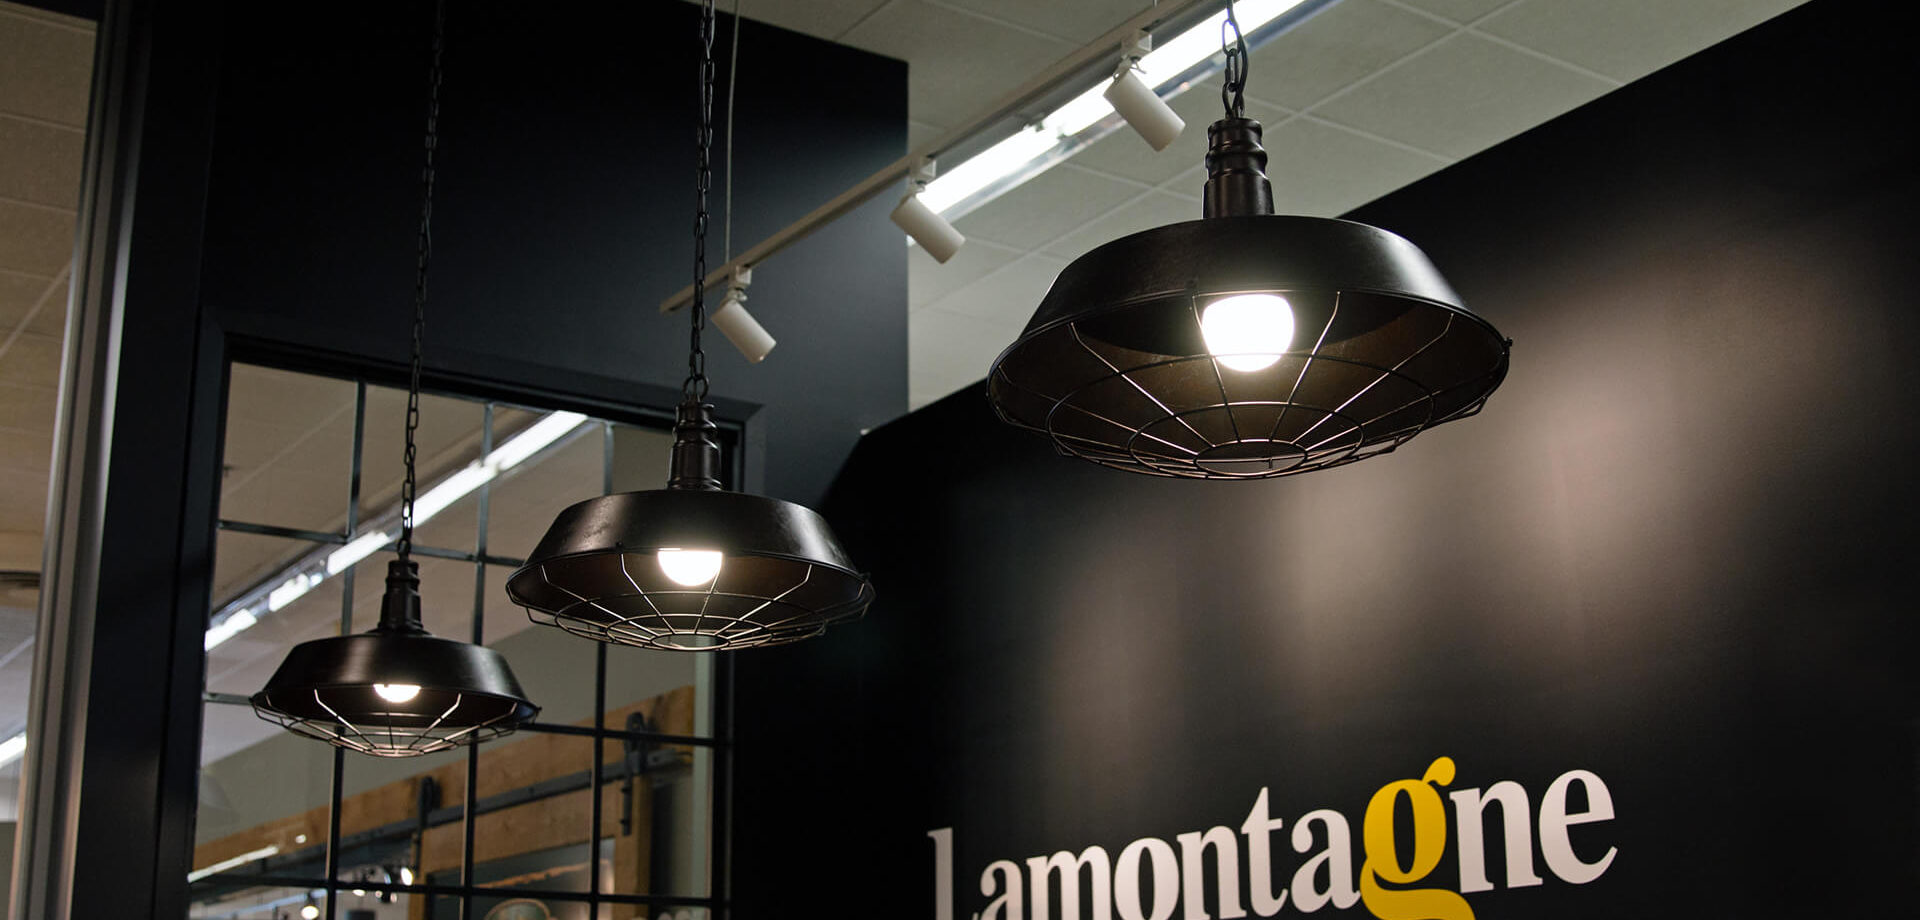 Lamontagne bakery logo on a black wall